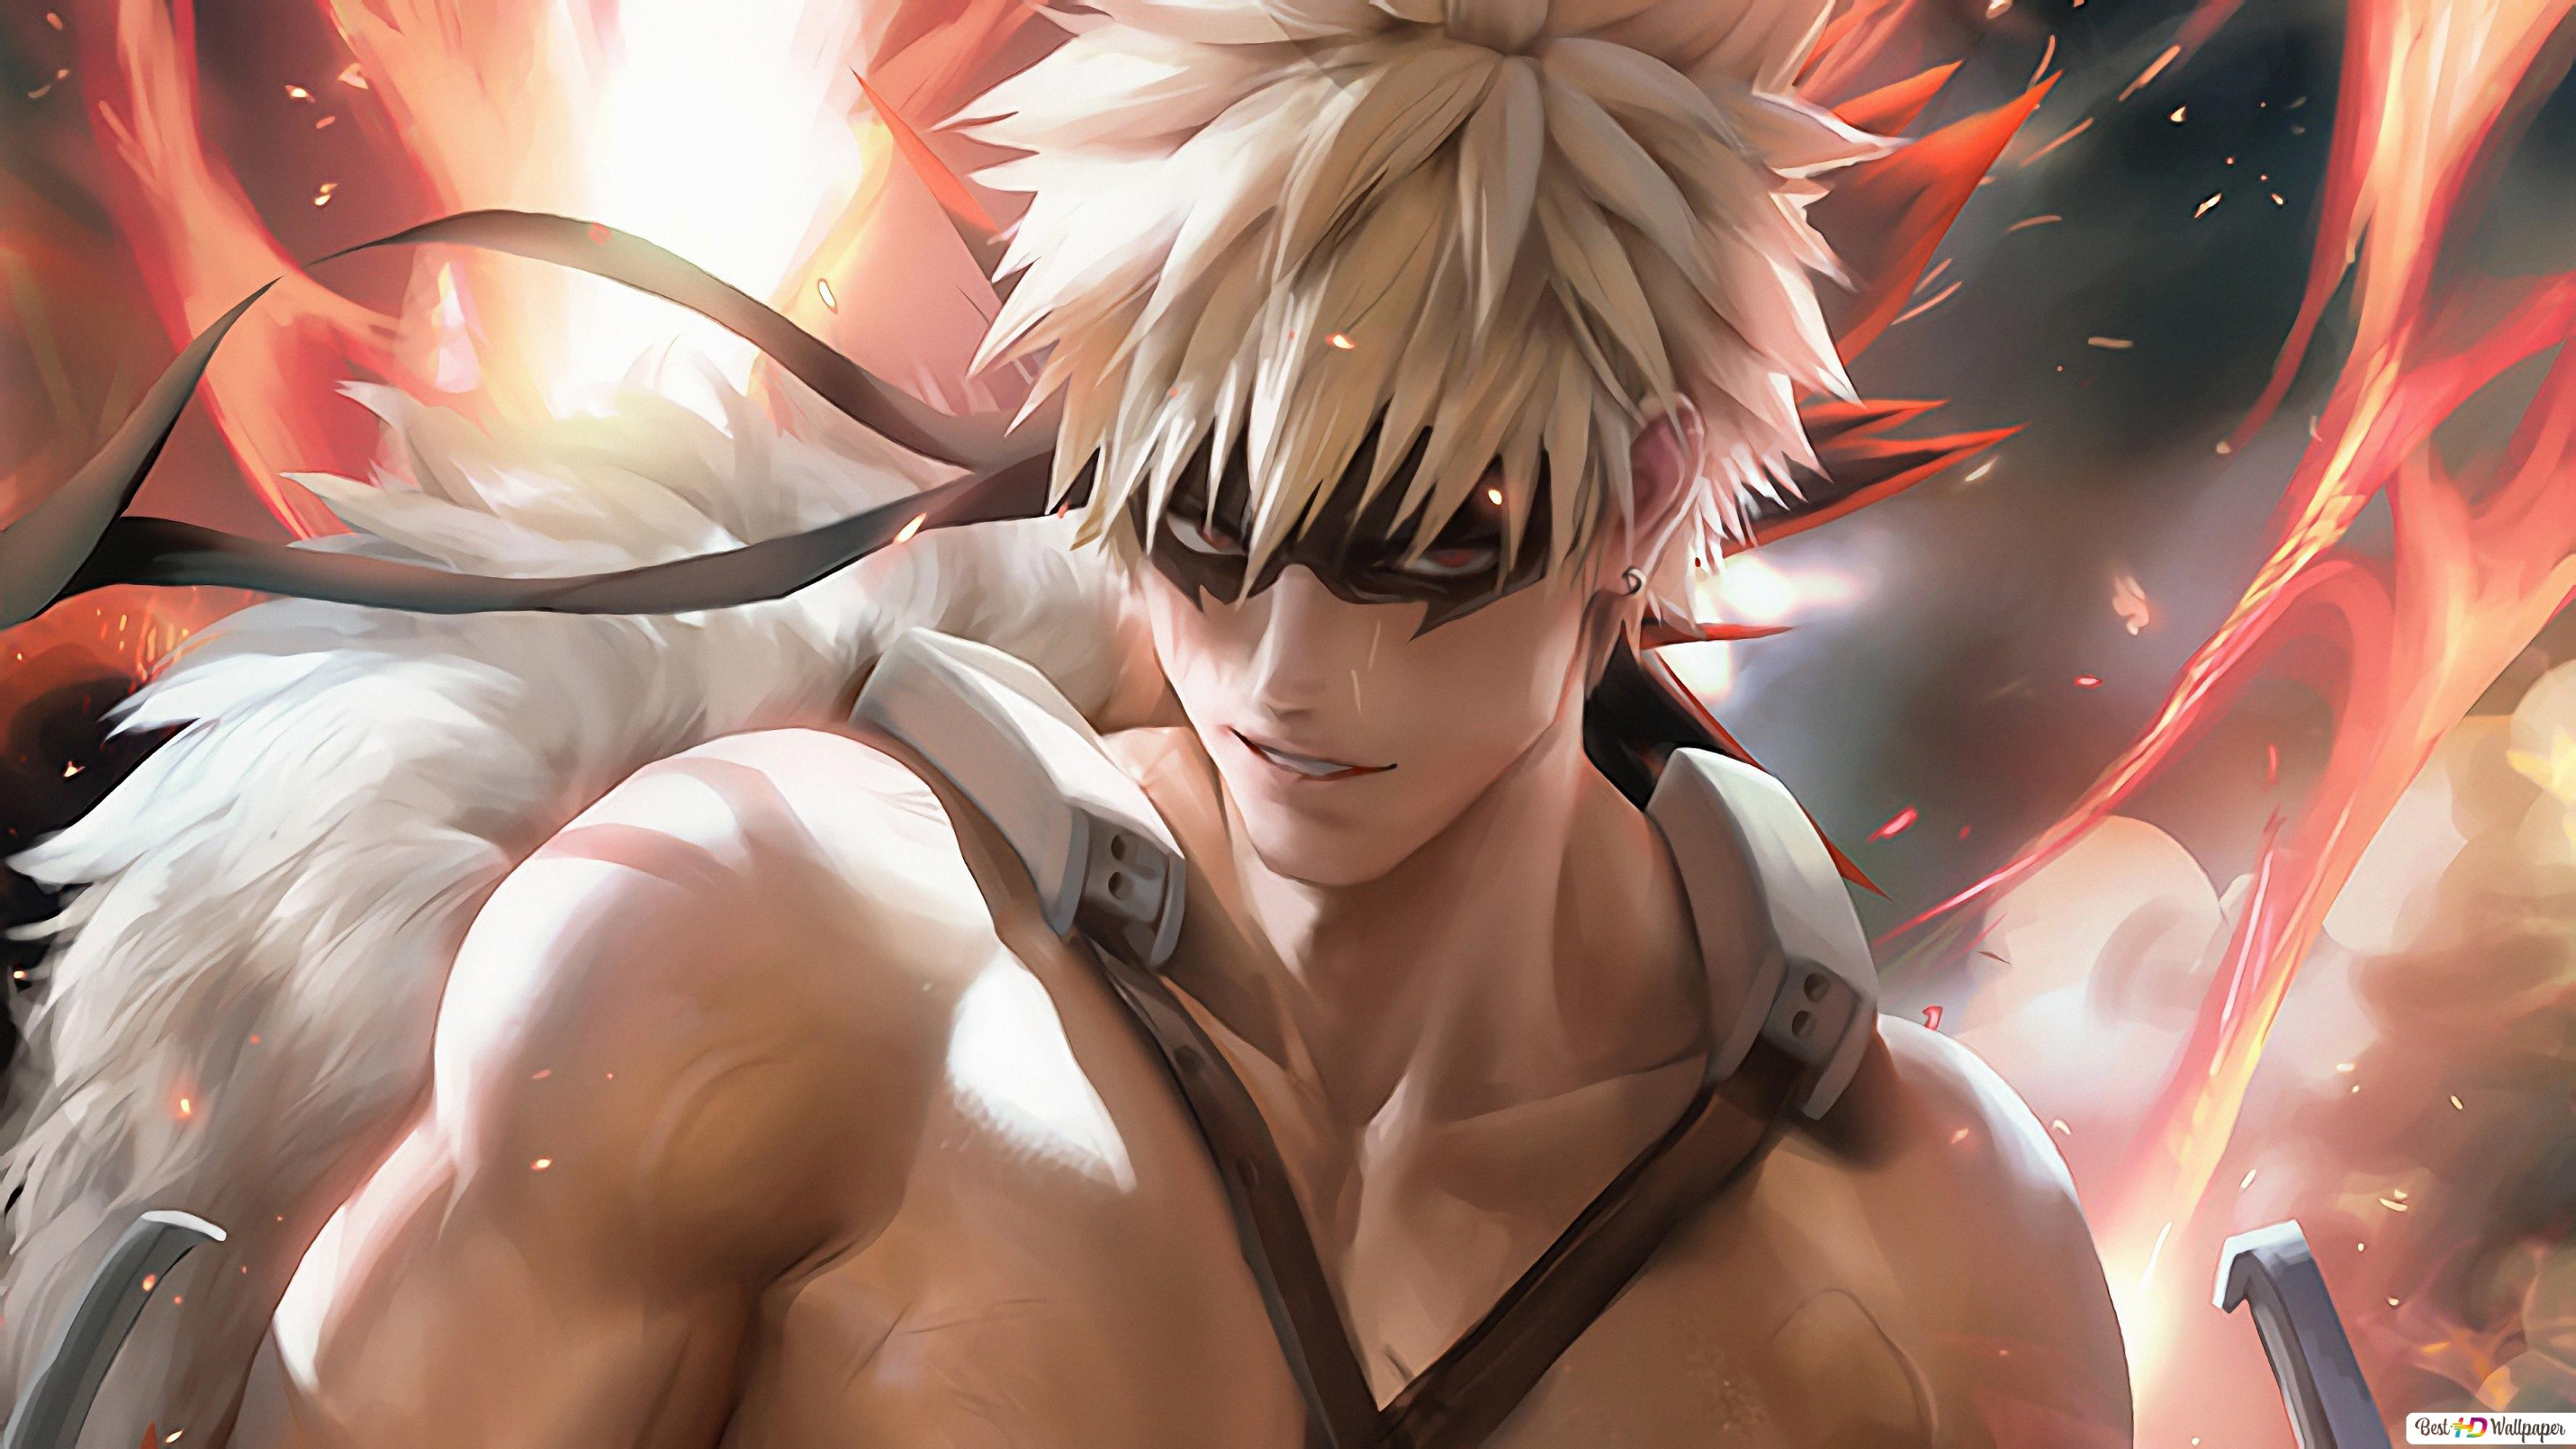 My Hero Academia Katsuki Bakugou Hd Wallpaper Download